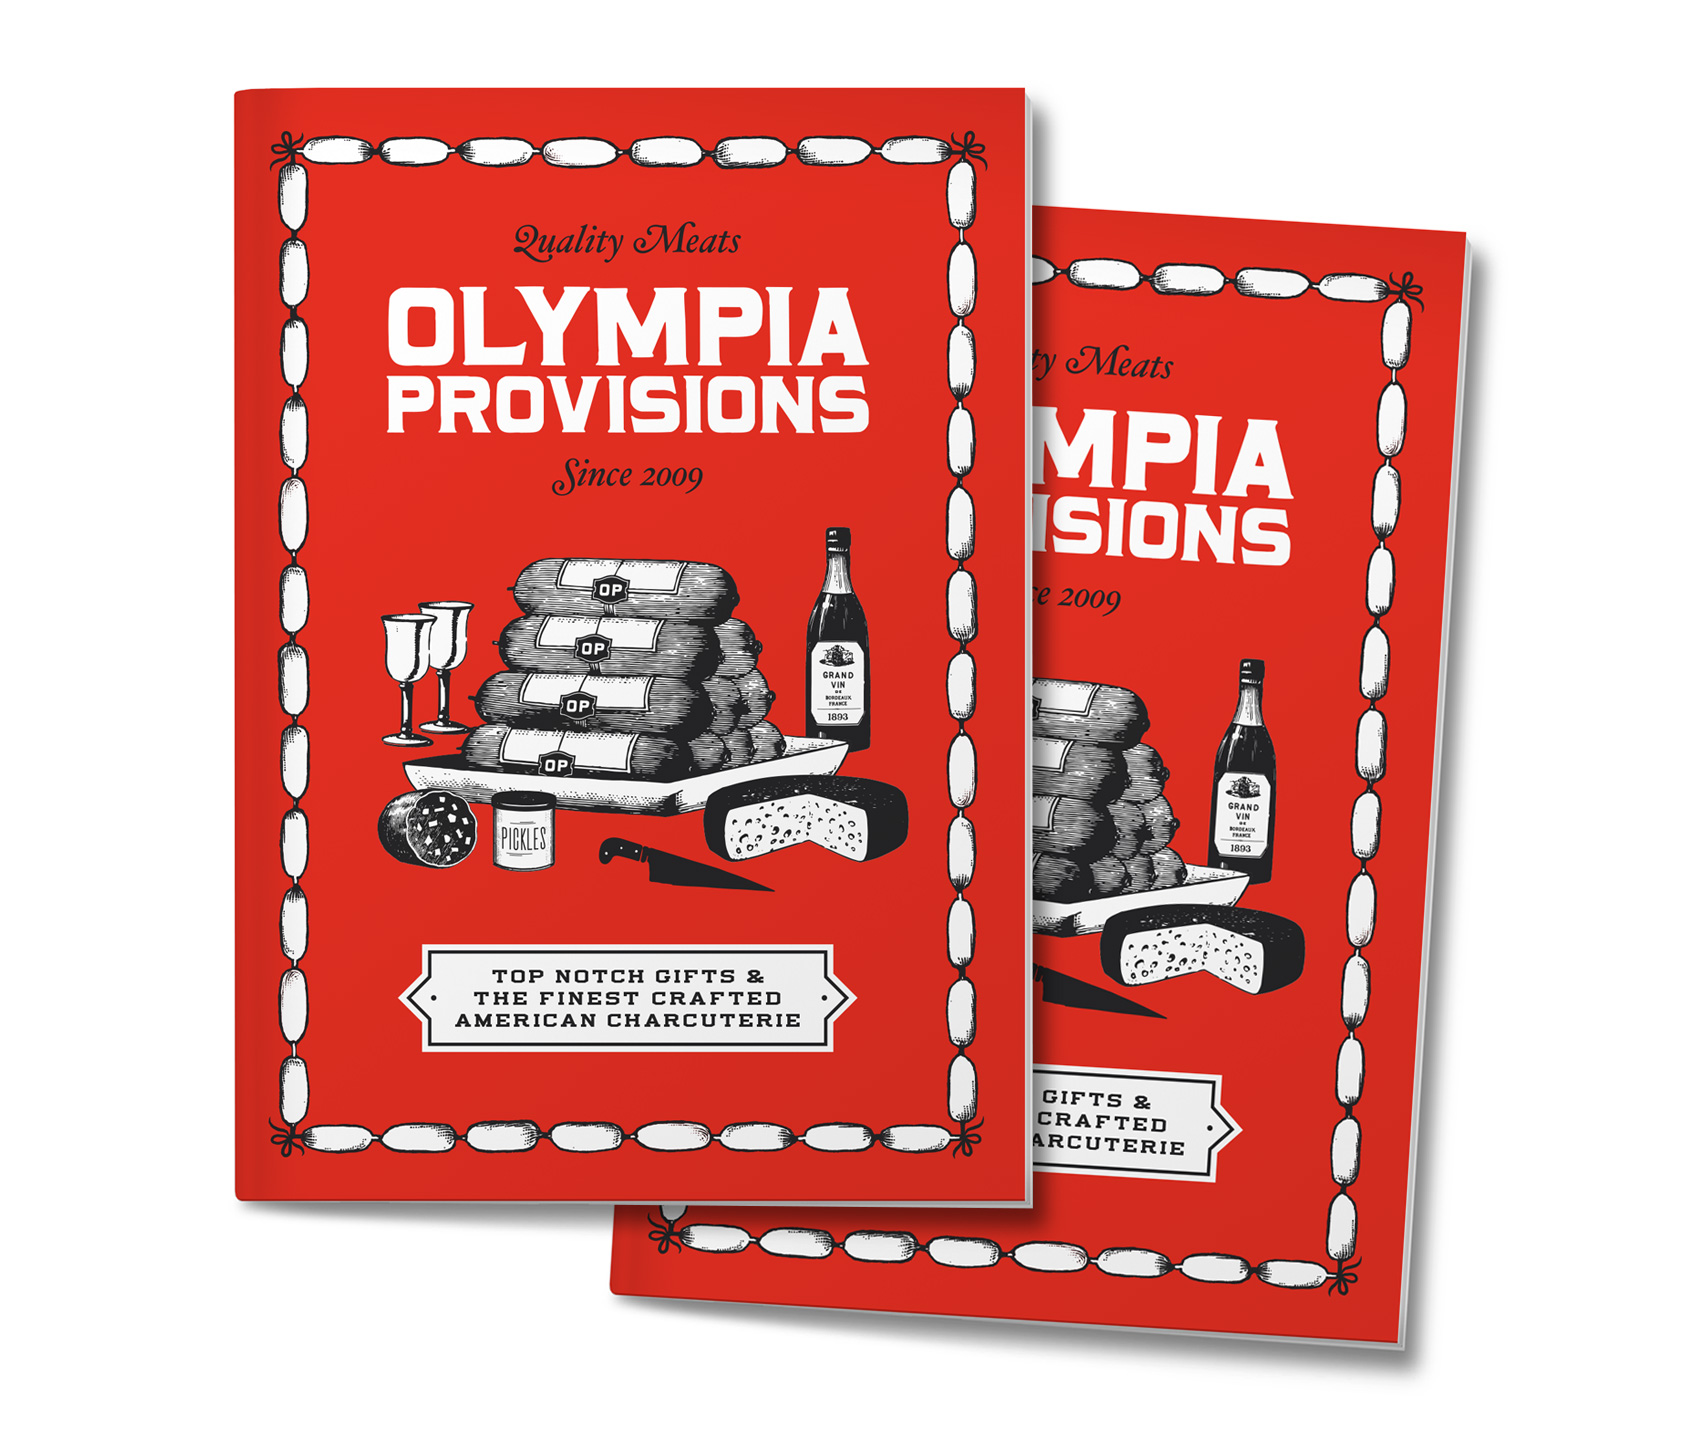 Olympia Provisions holiday catalog - a red booklet with stack of sausage on display